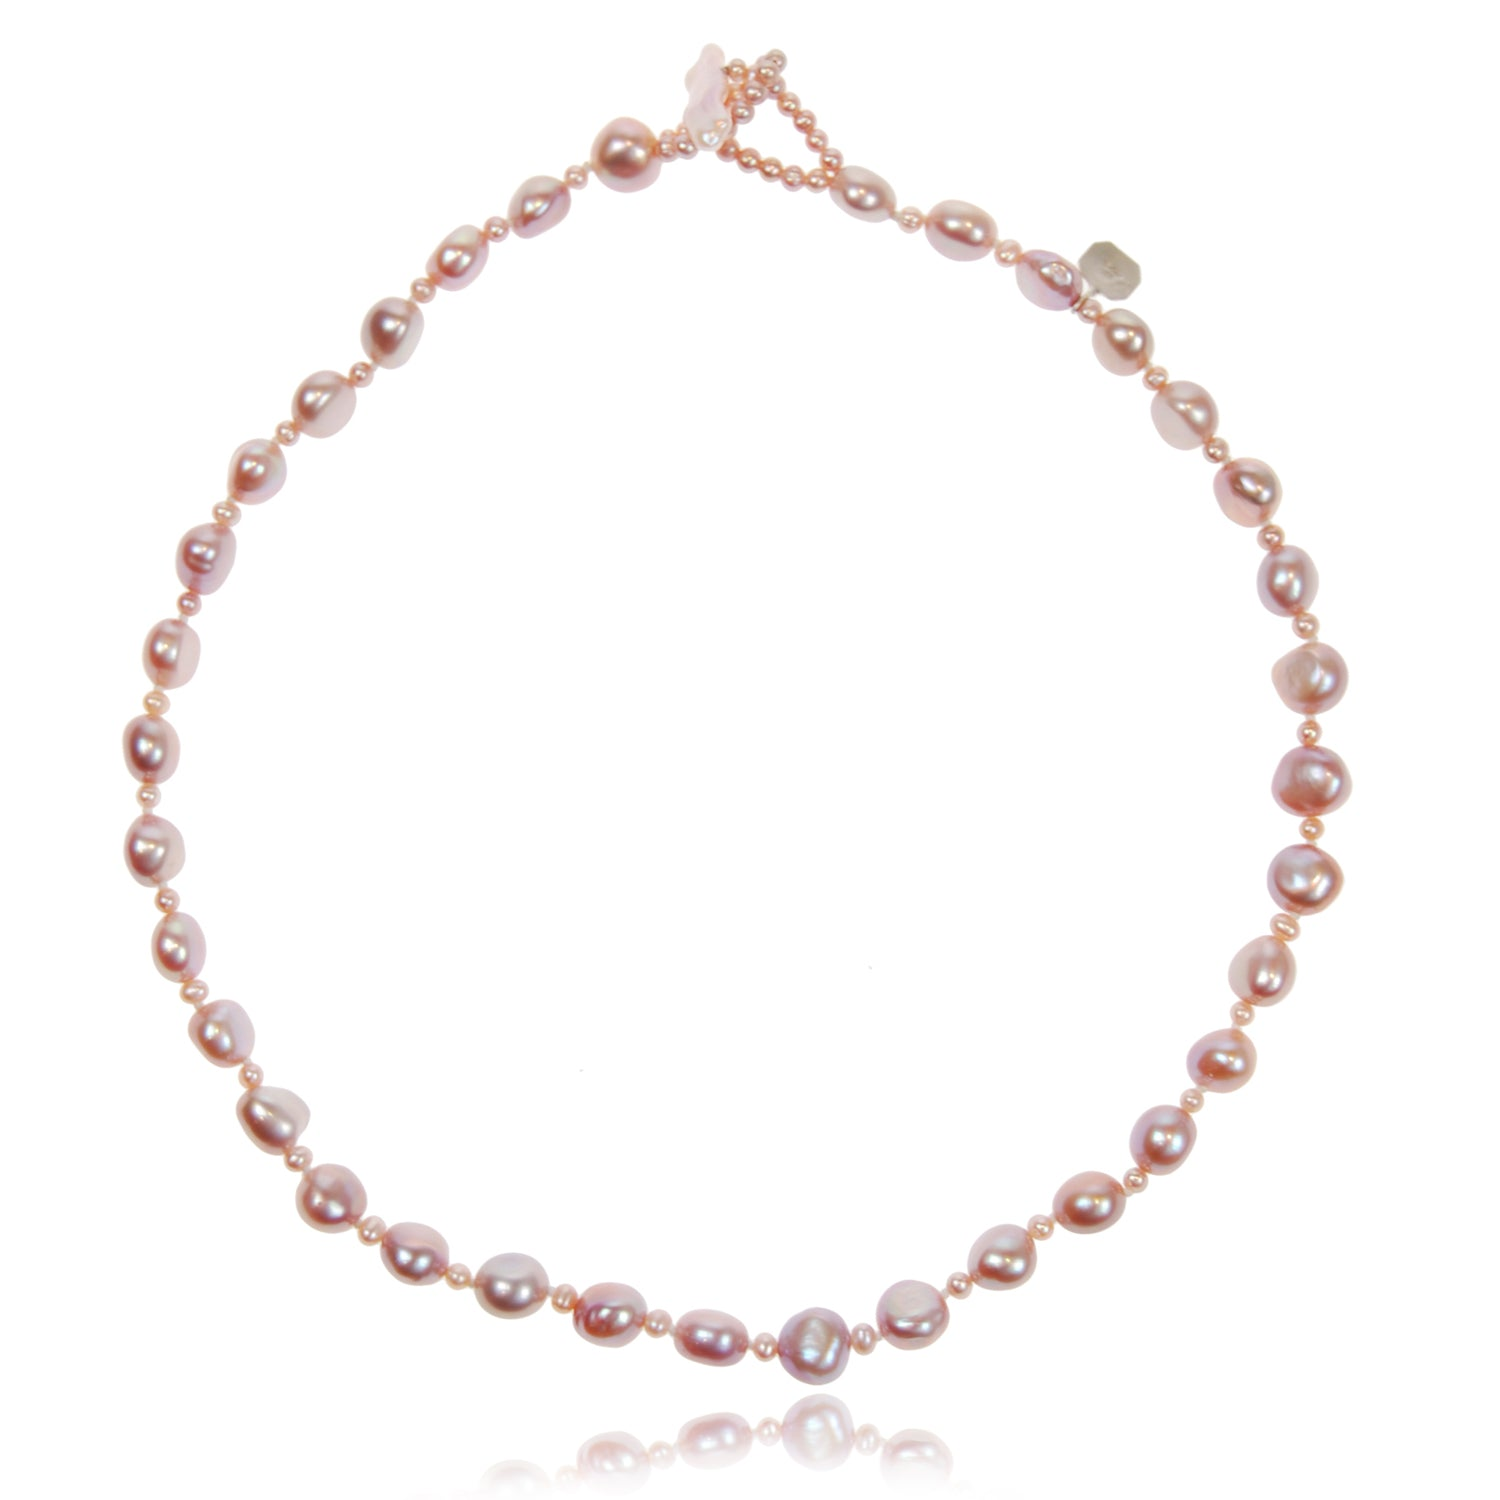 Single Strand Biwa and Seed Pearl Necklace in Pink